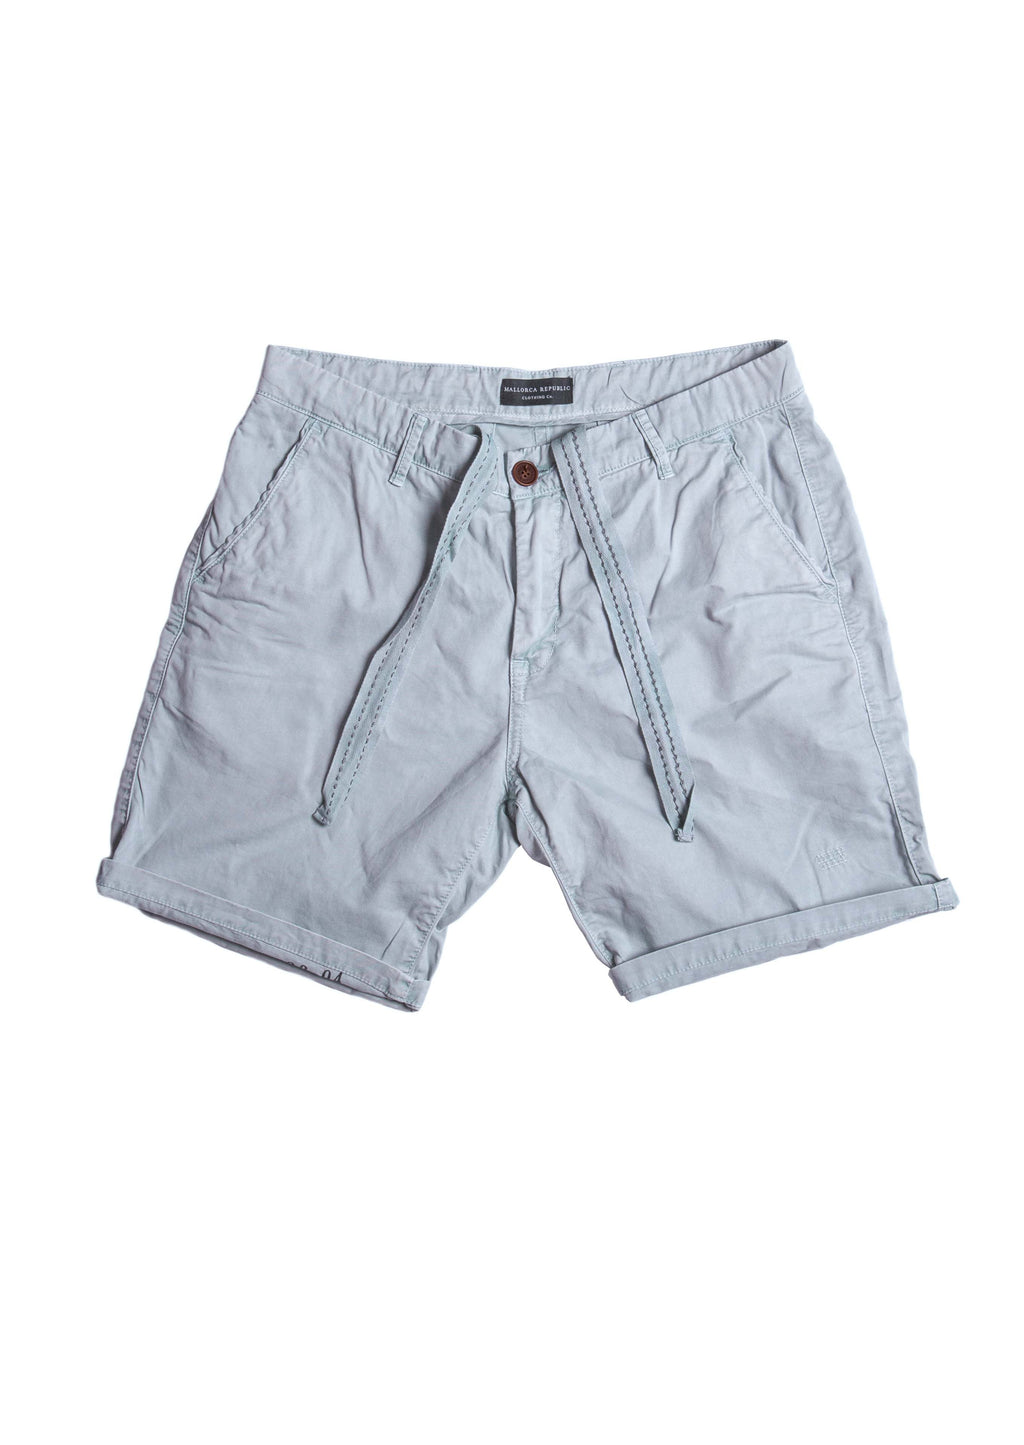 Short de Loneta Azul